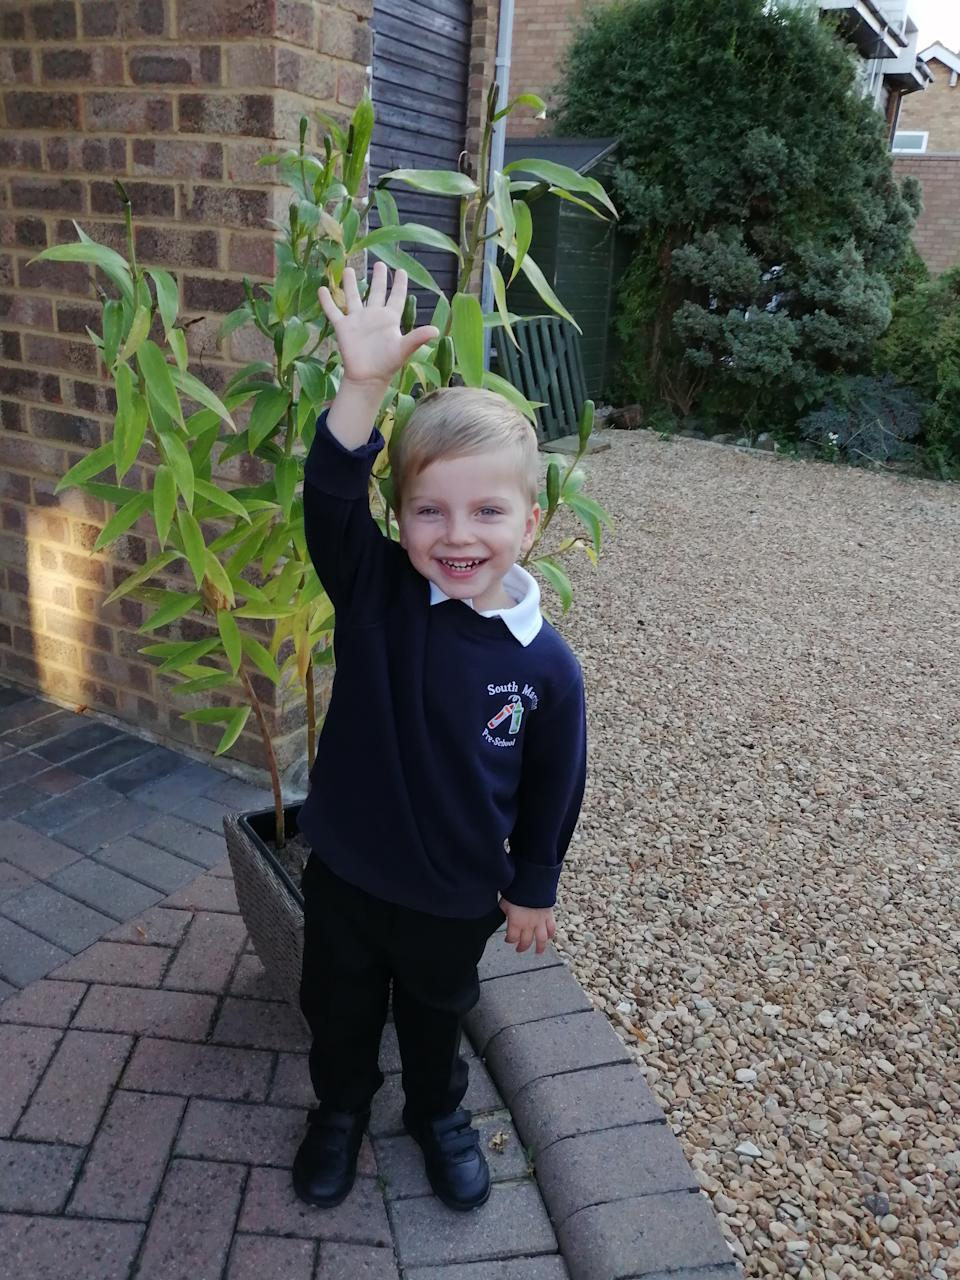 Four-year-old boy on his first day of school